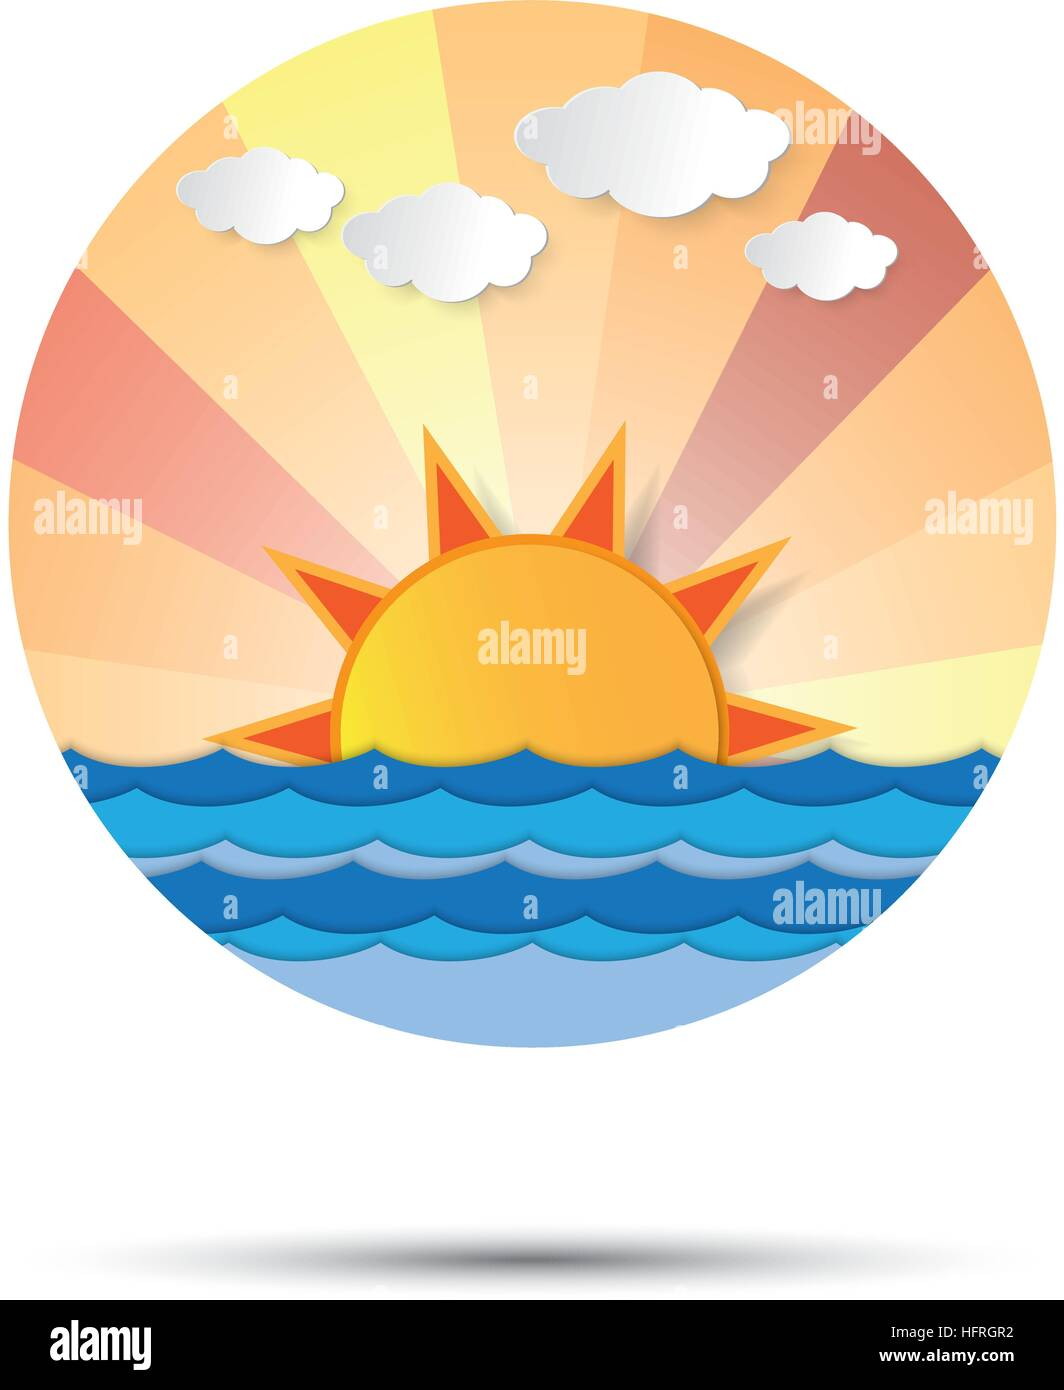 Sunrise and sunset icon logo vector graphic design. sun rising or ...